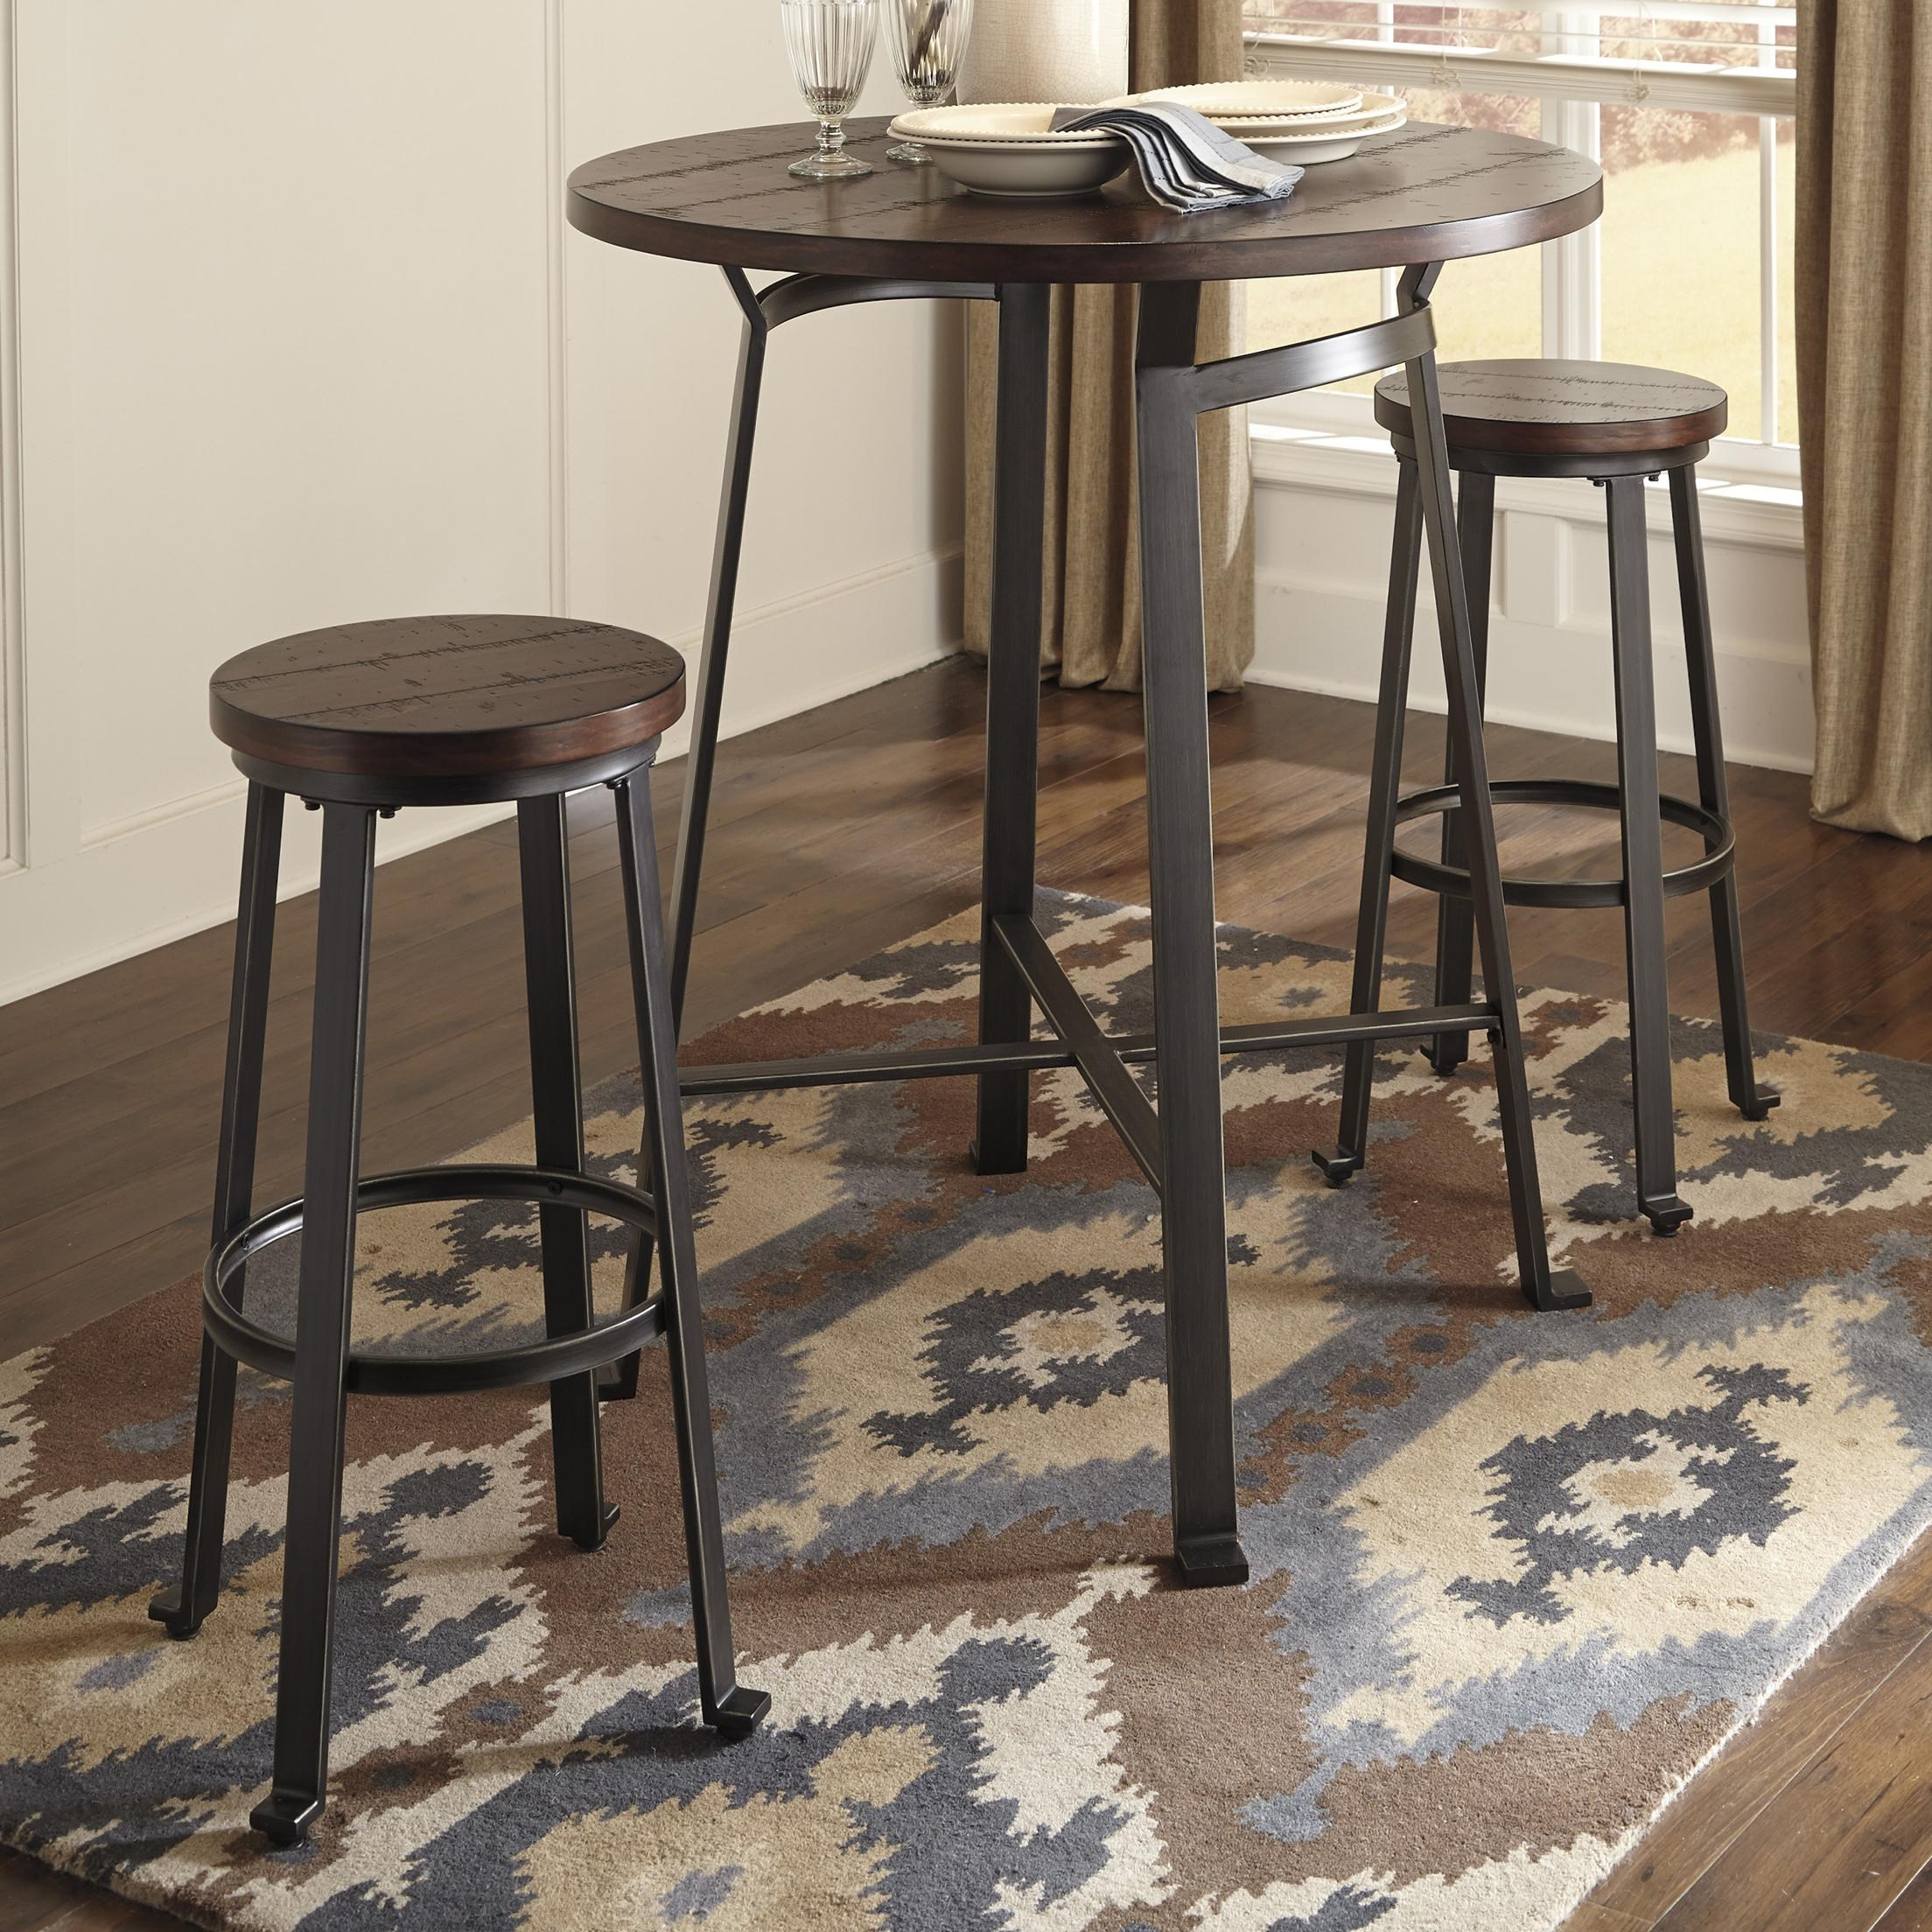 Signature Design By Ashley Challiman 3 Piece Round Bar Table Set    Household Furniture   Pub Table And Stool Set